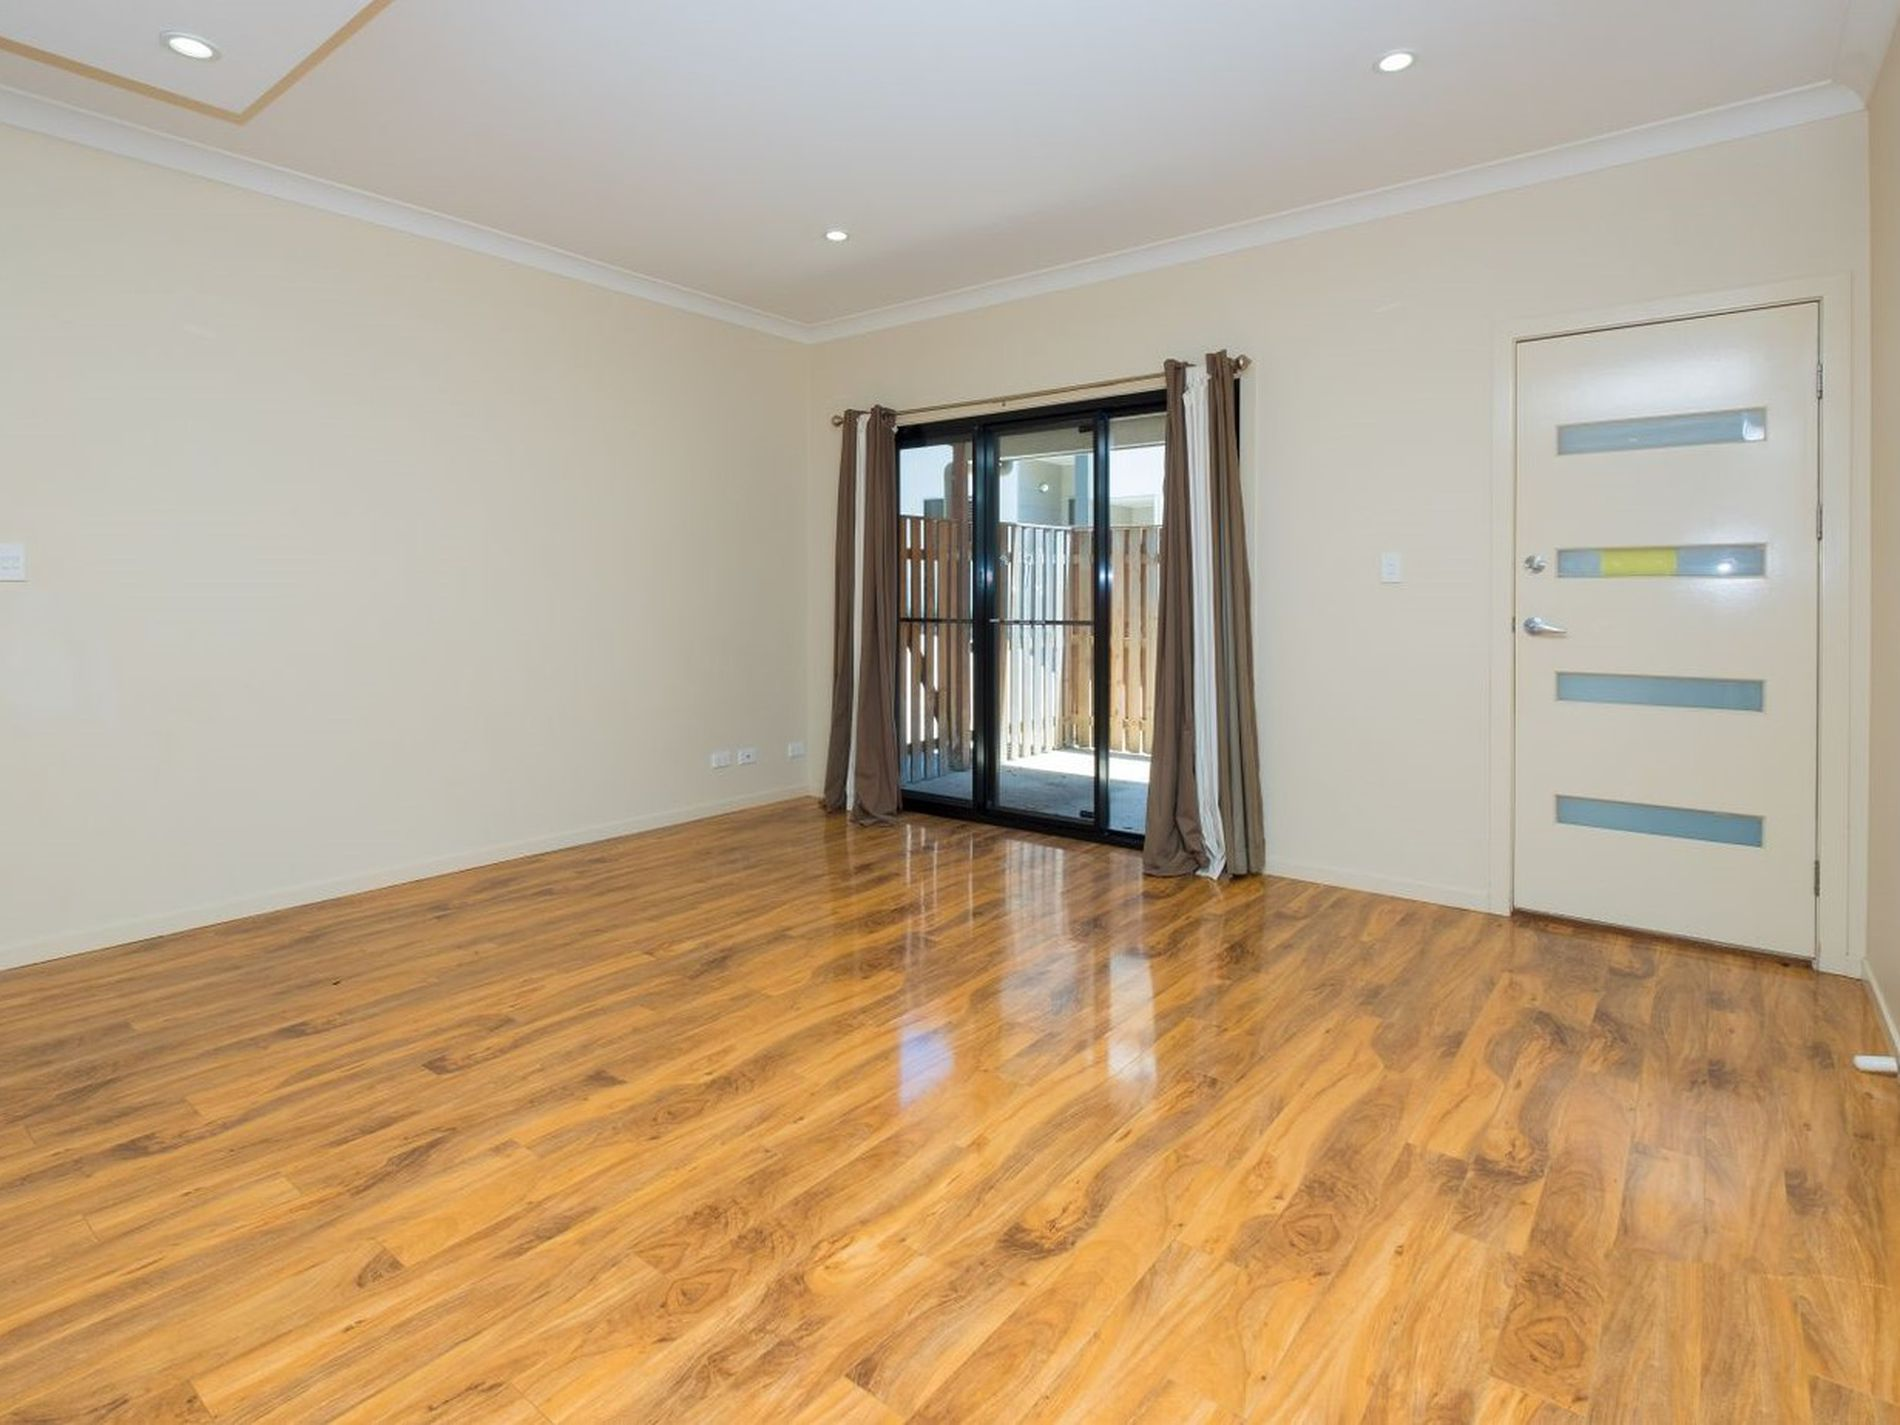 7 / 22 Keidges Road, Bellbird Park